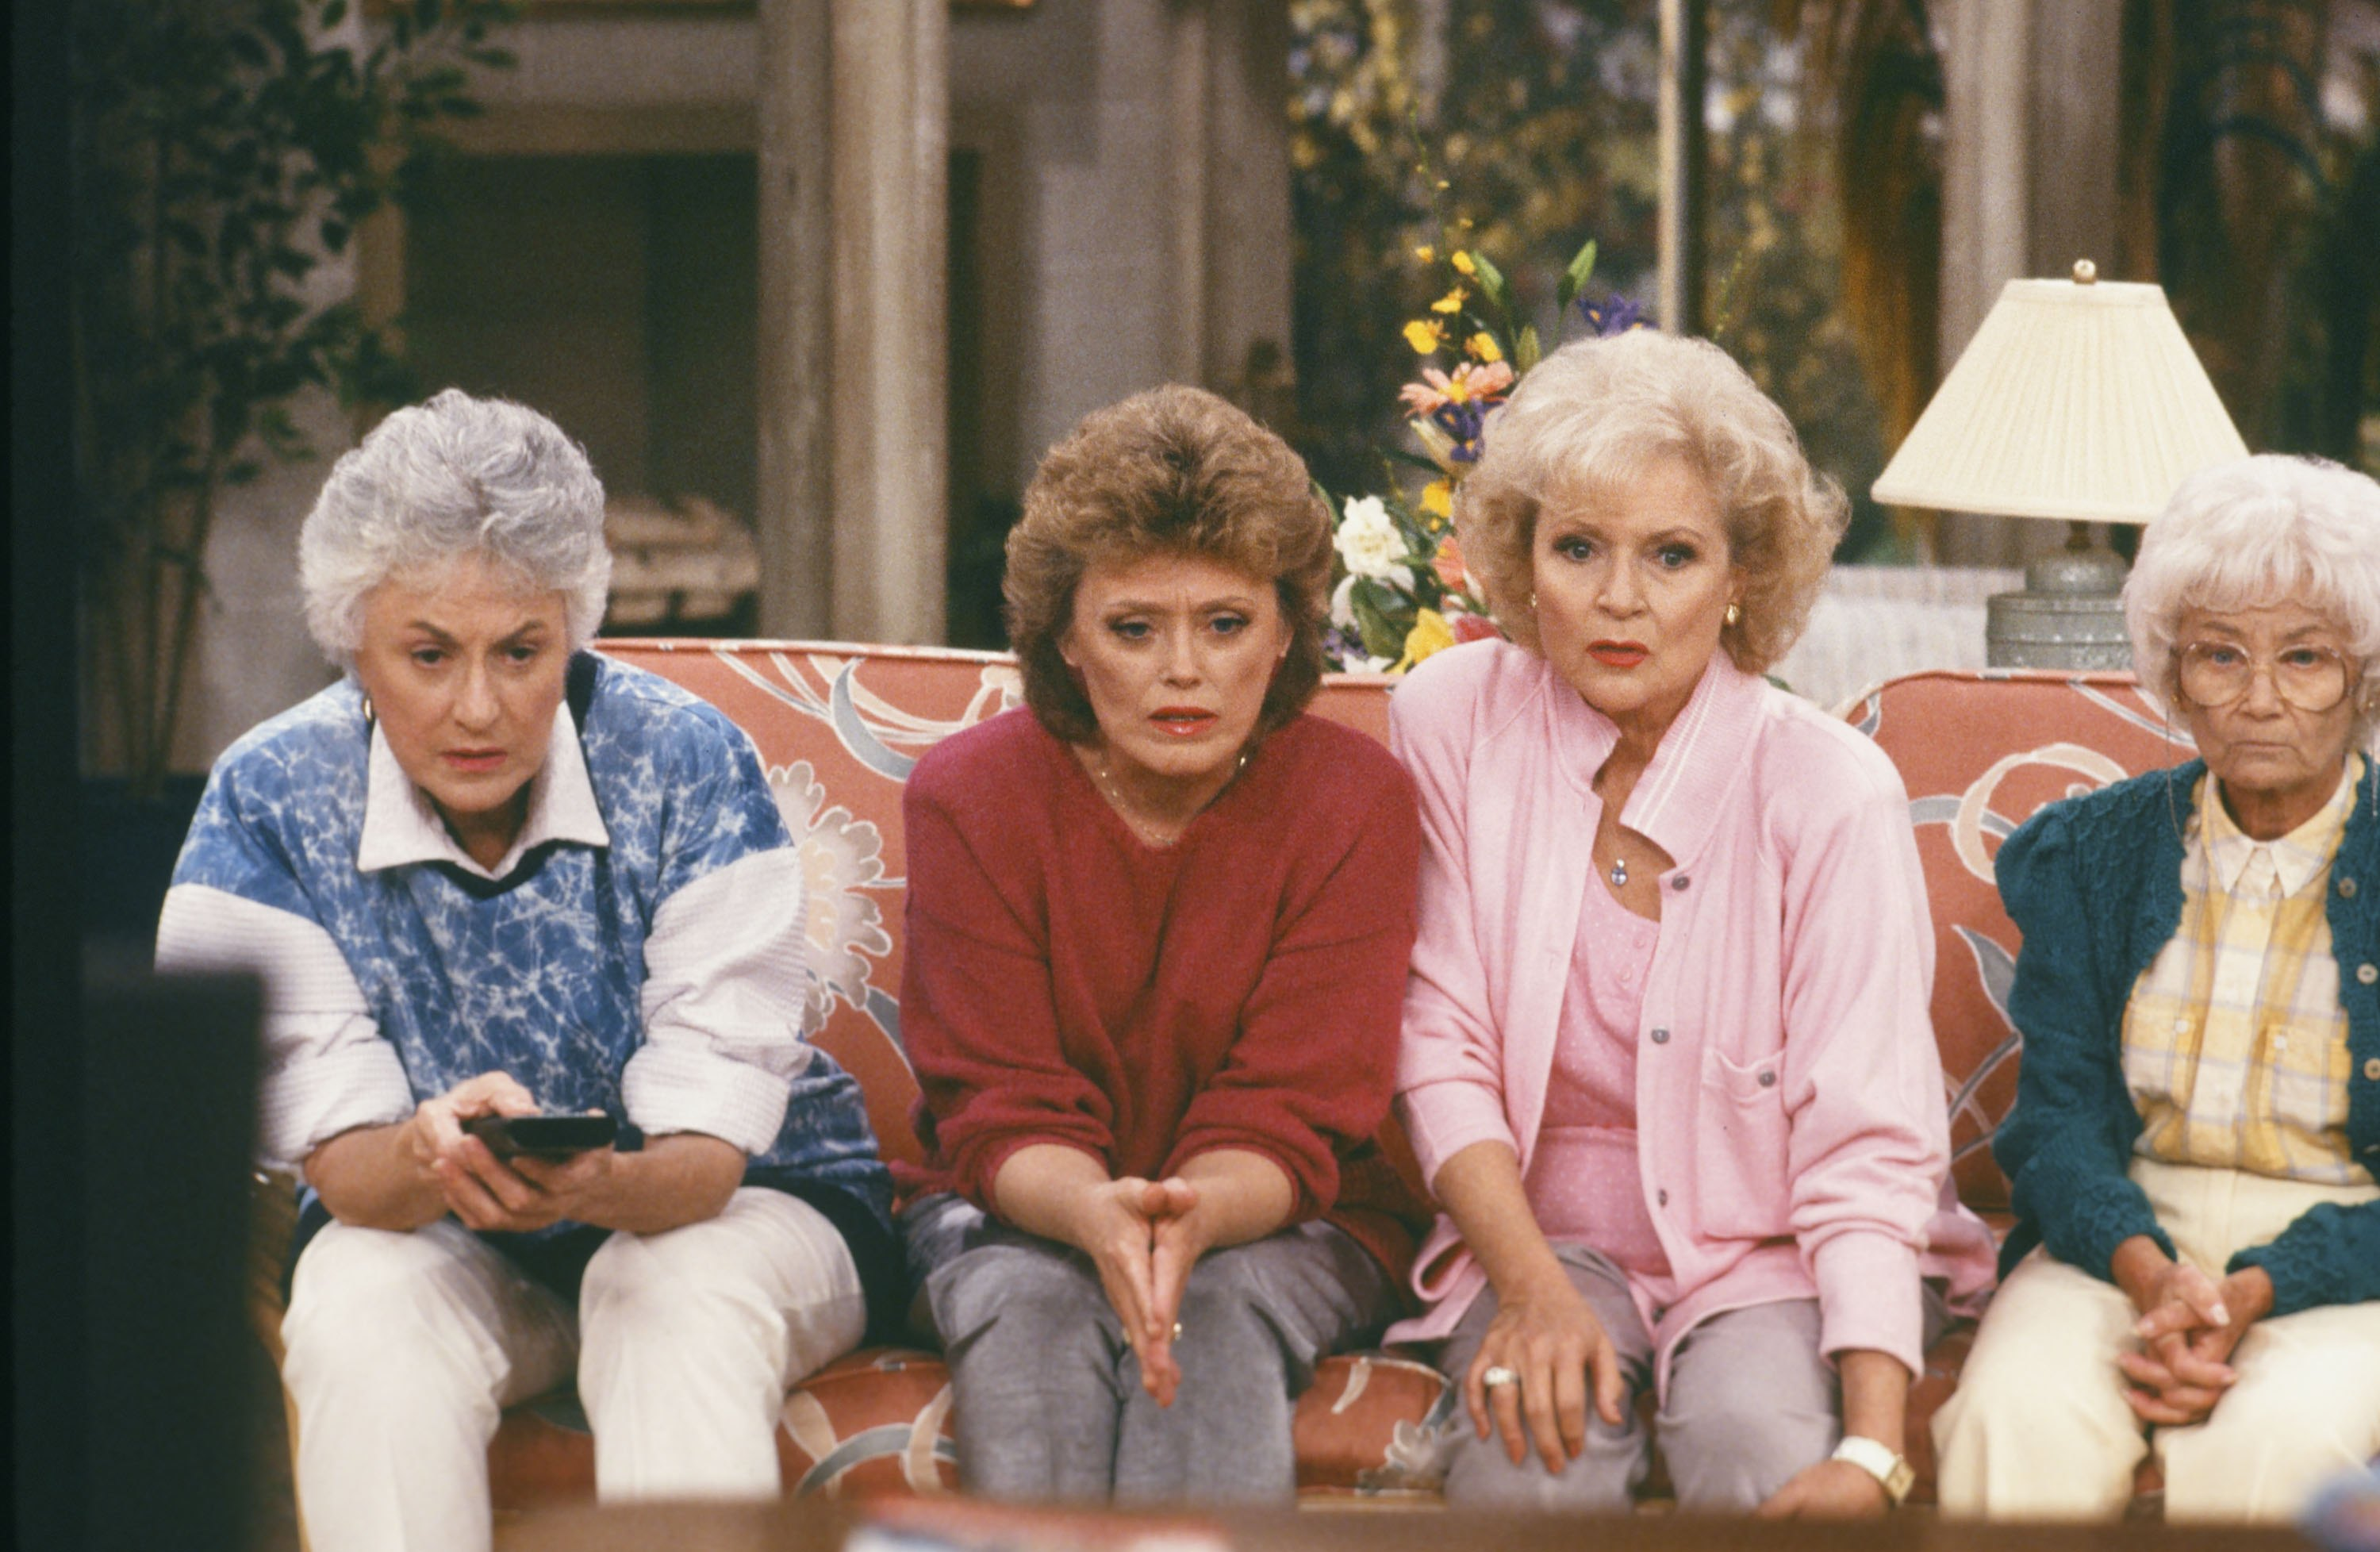 Golden Girls Director Shares On-Set Secrets From the Show